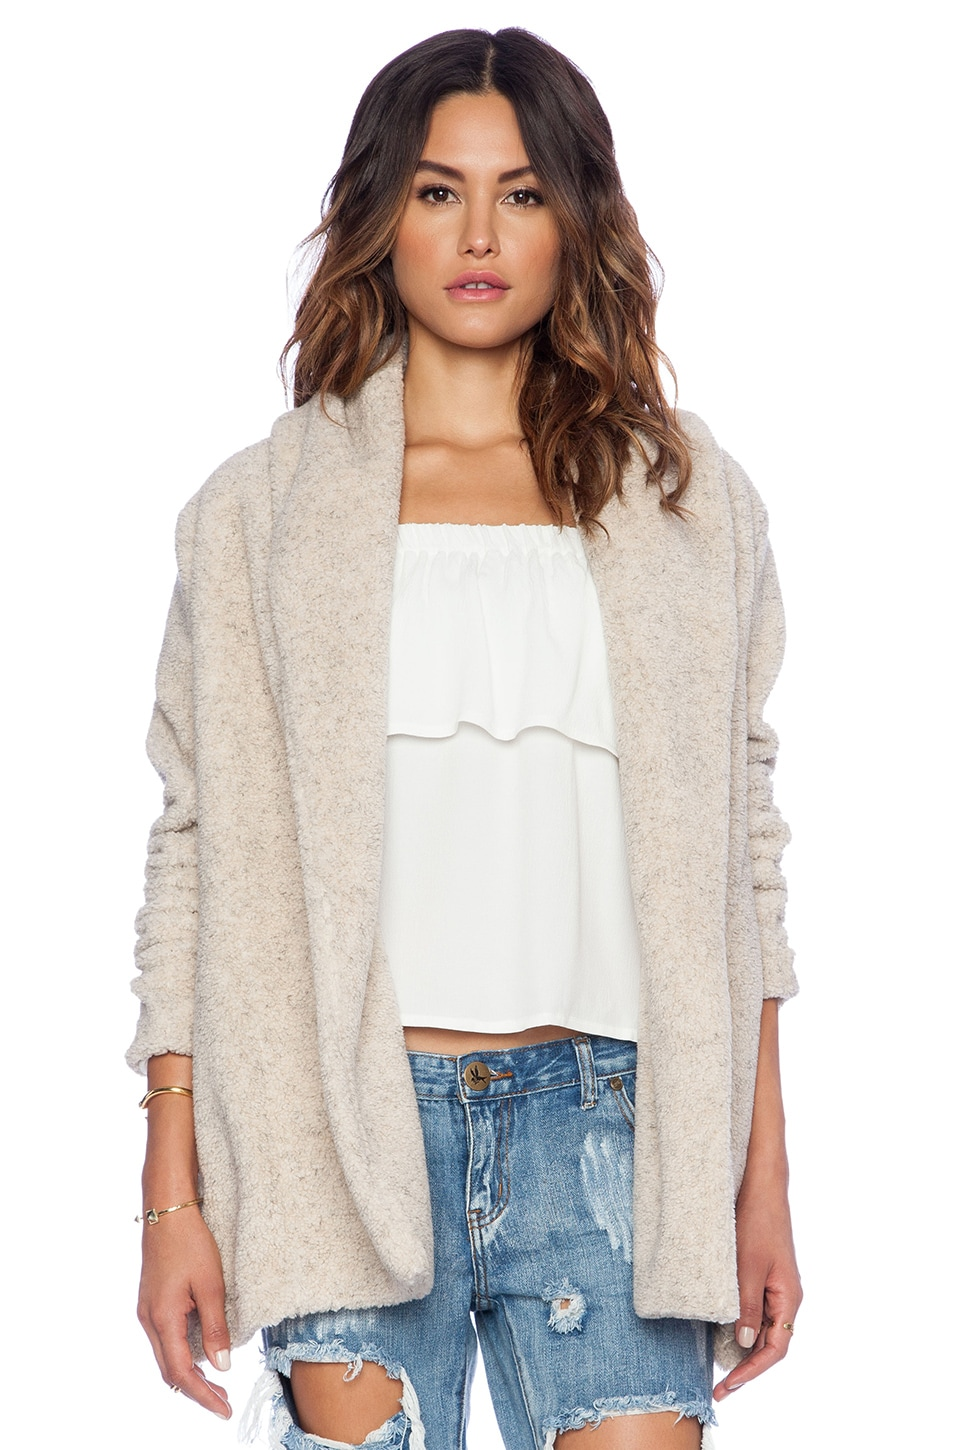 Otis & Maclain Native Faux Shearling Jacket in Shearling